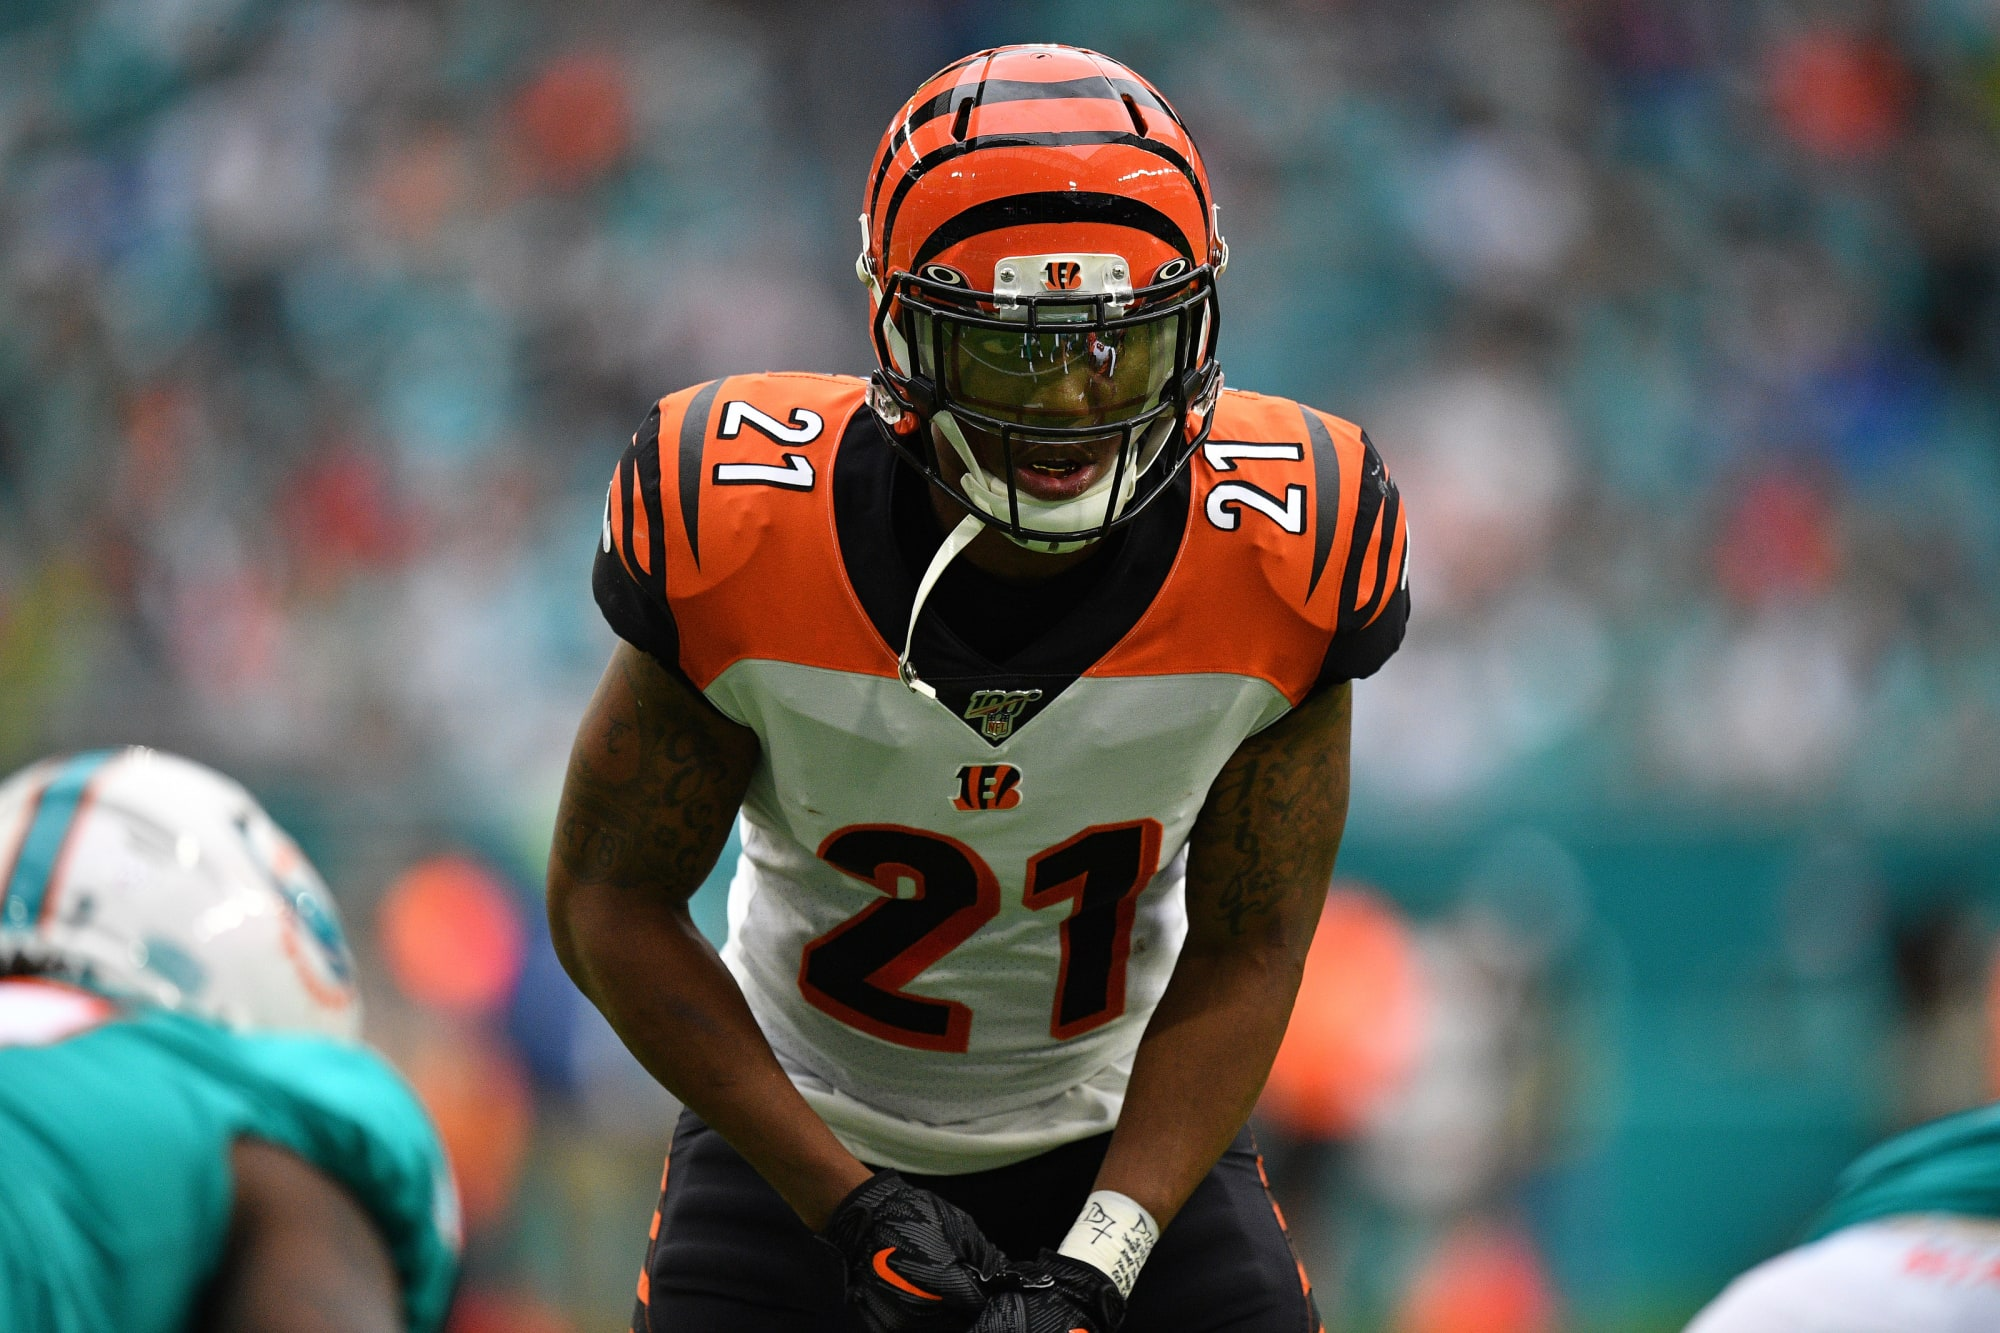 Could Darqueze Dennard become the next Vikings slot corner? - Page 2